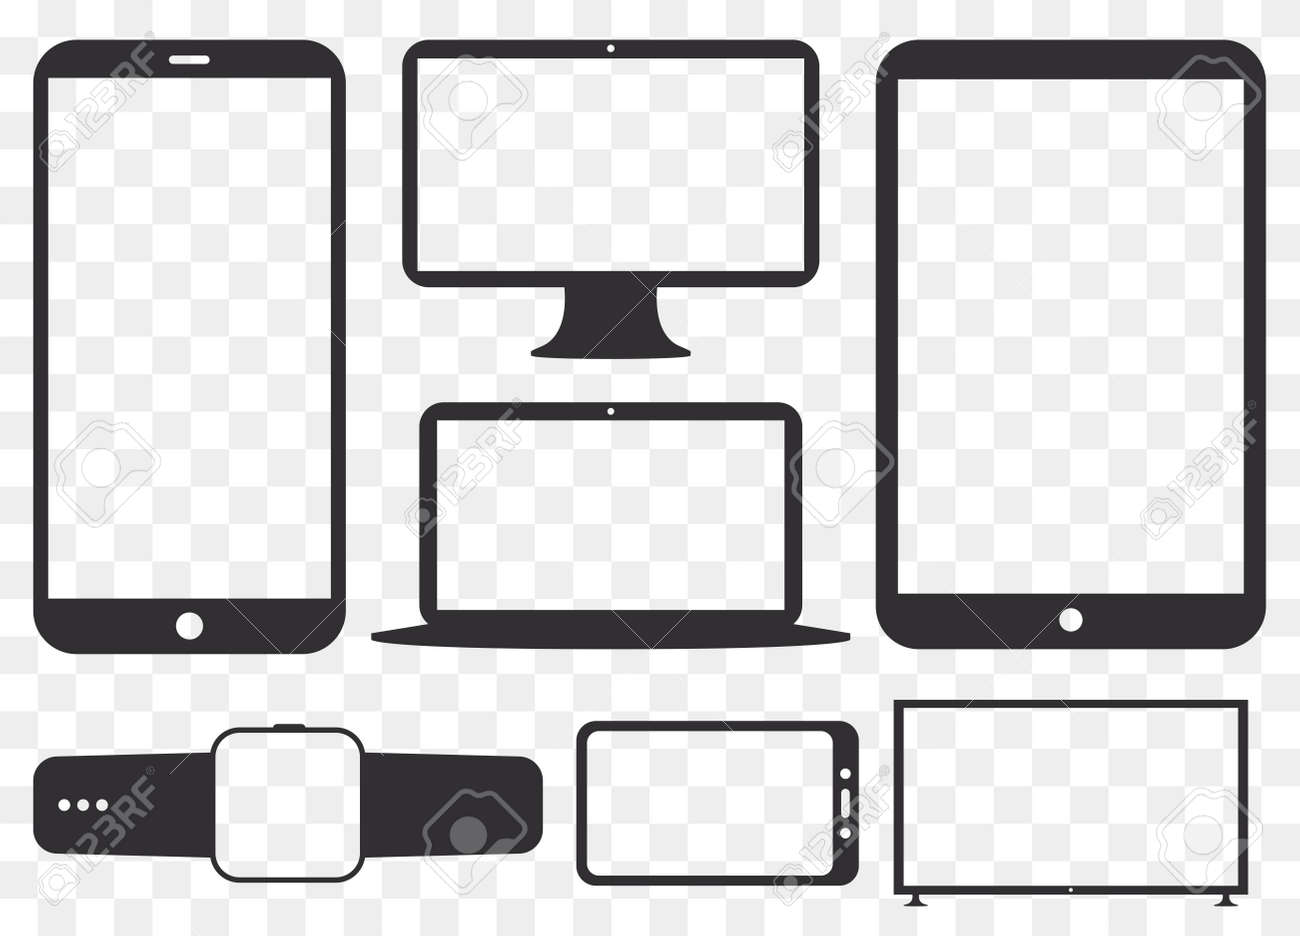 Mobile Phone, Tablet PC, Computer Monitor, Laptop Screen and Smart Watch Silhouette Vector Icon Set. Transparent and Flat Icons for Digital Devices. - 156142996